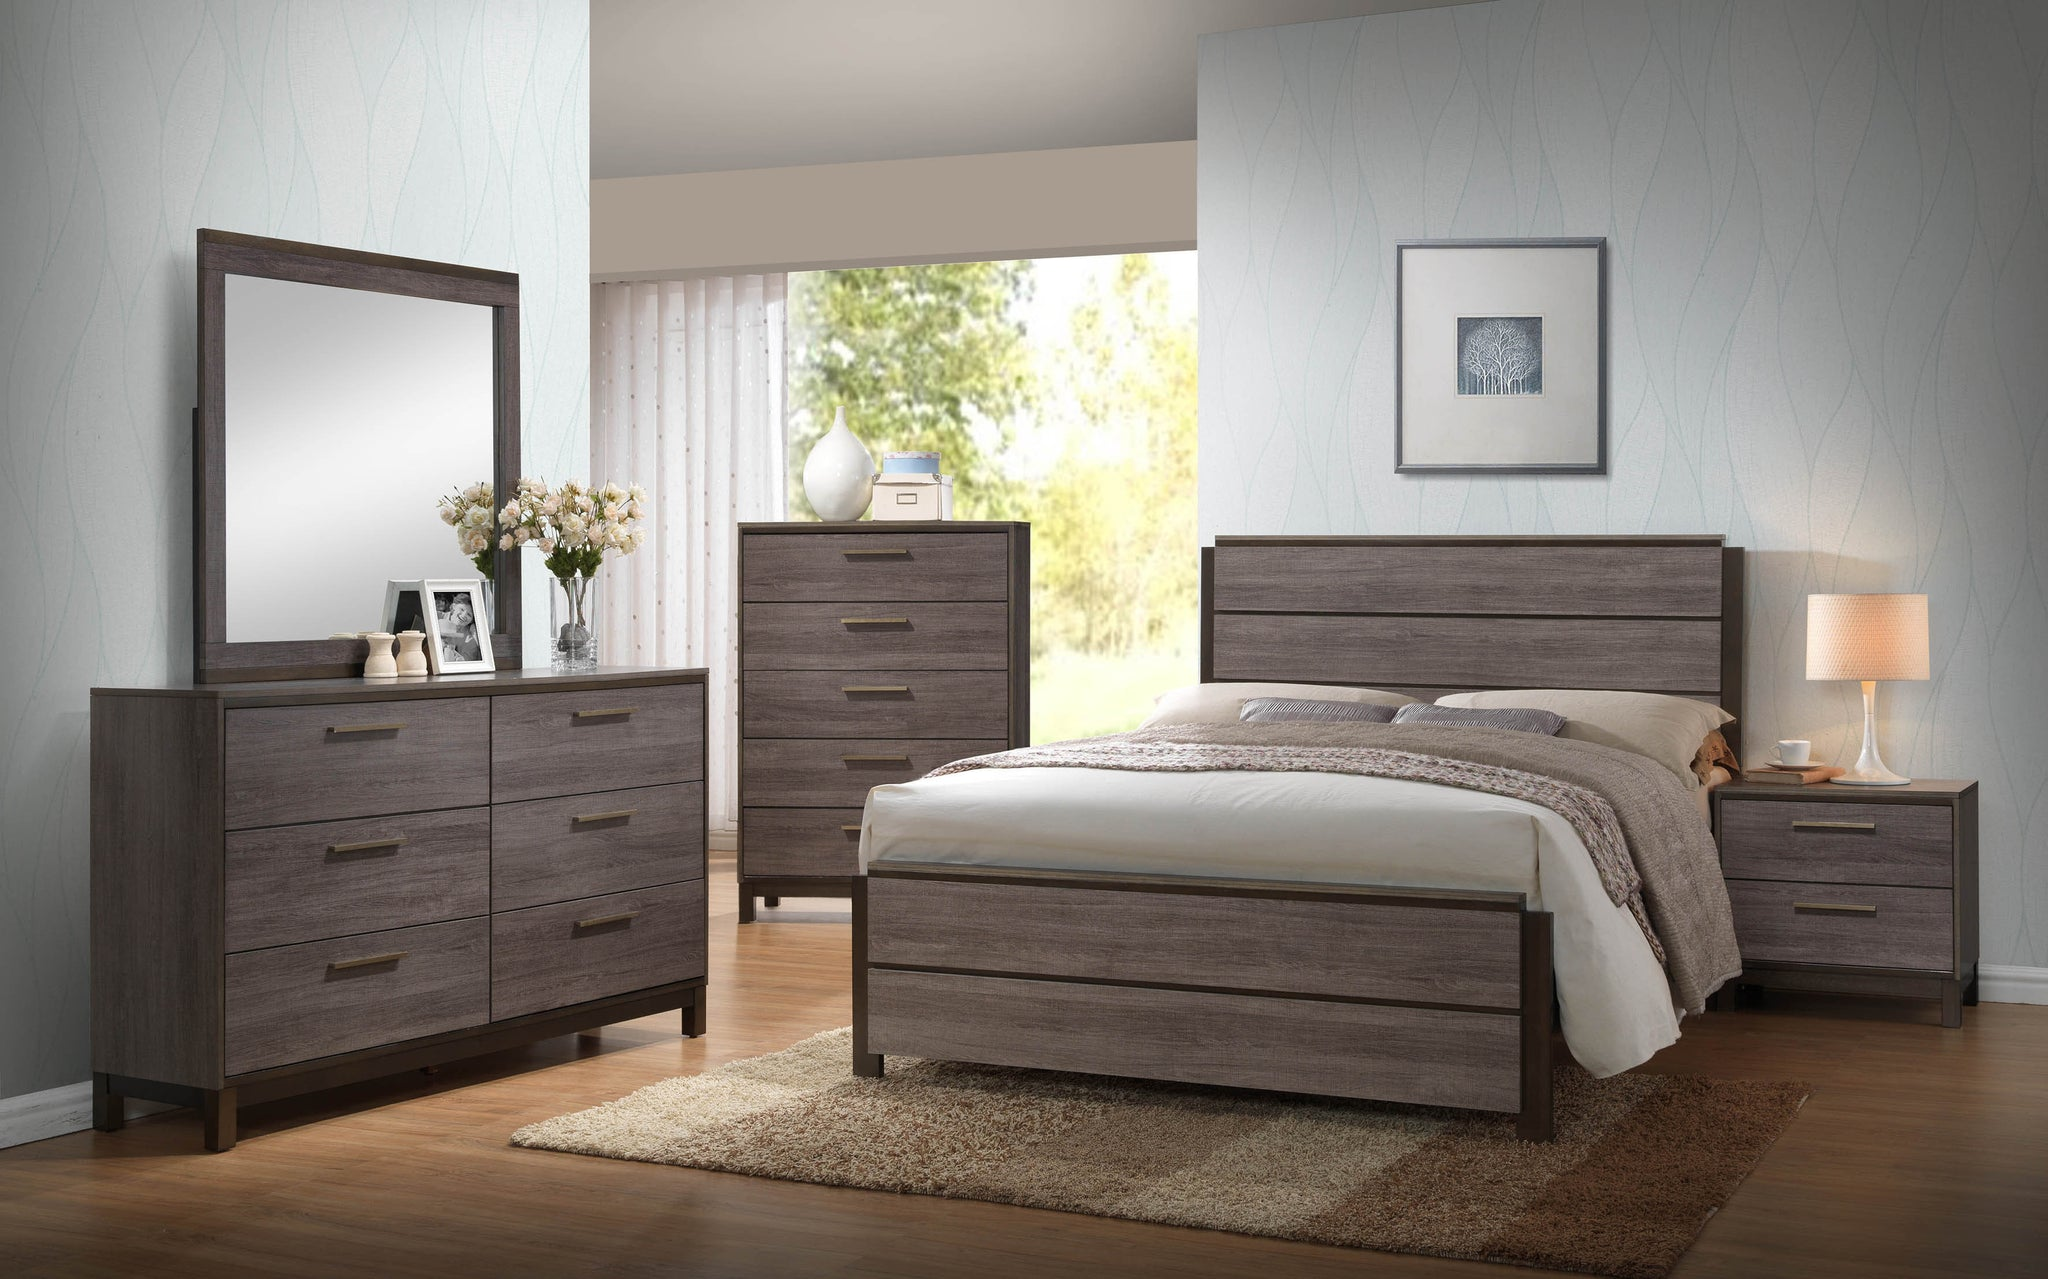 Antique gray wood king or queen size configurable modern panel bedroom set bed dresser for Grey wood bedroom furniture set